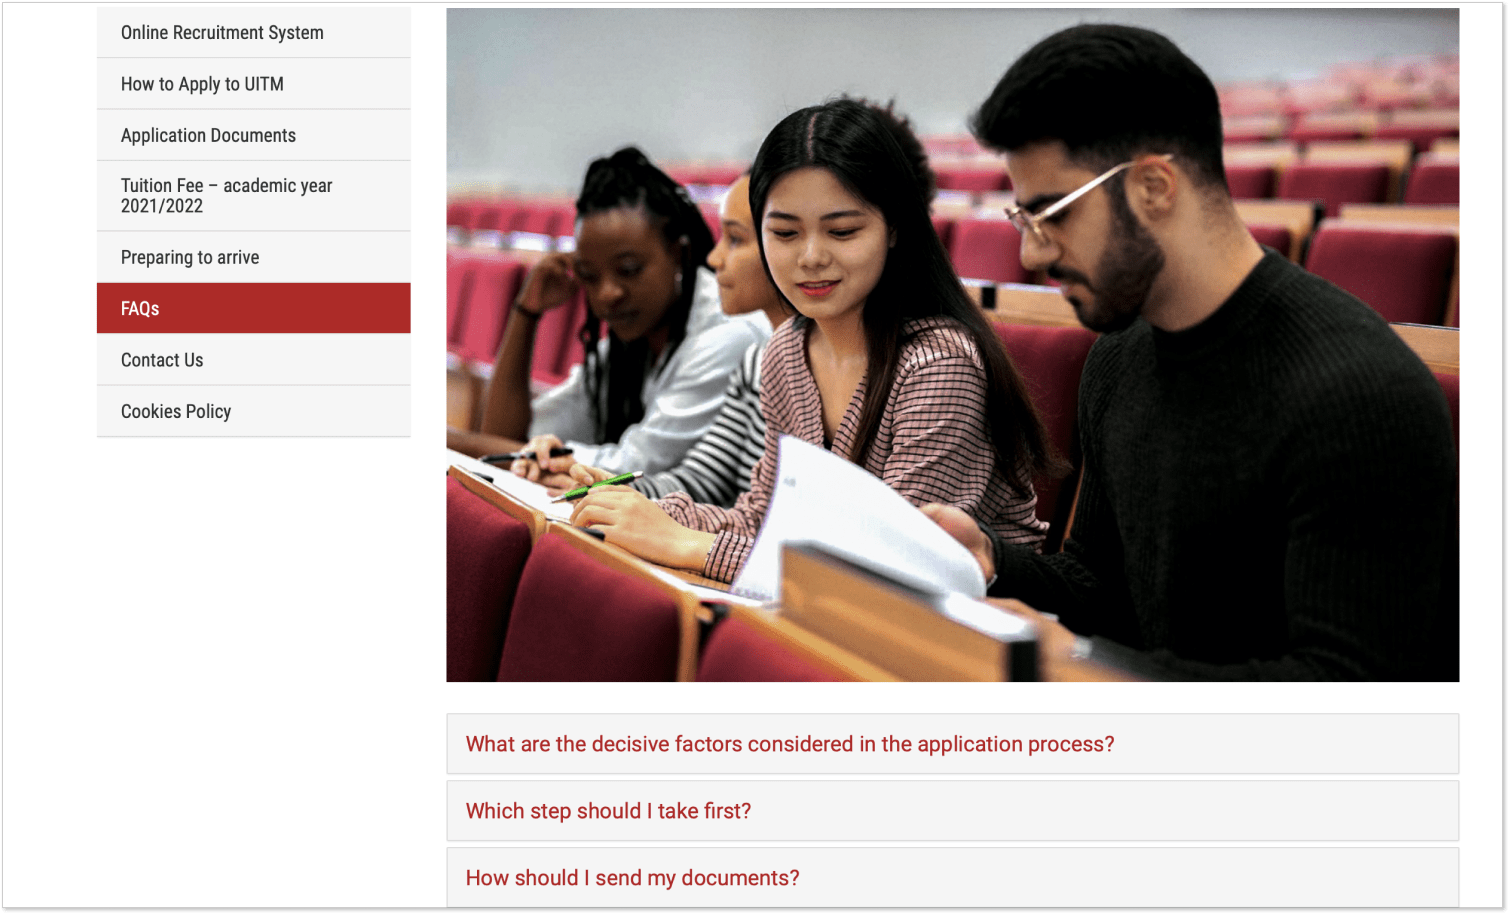 FAQ section at the UITM website